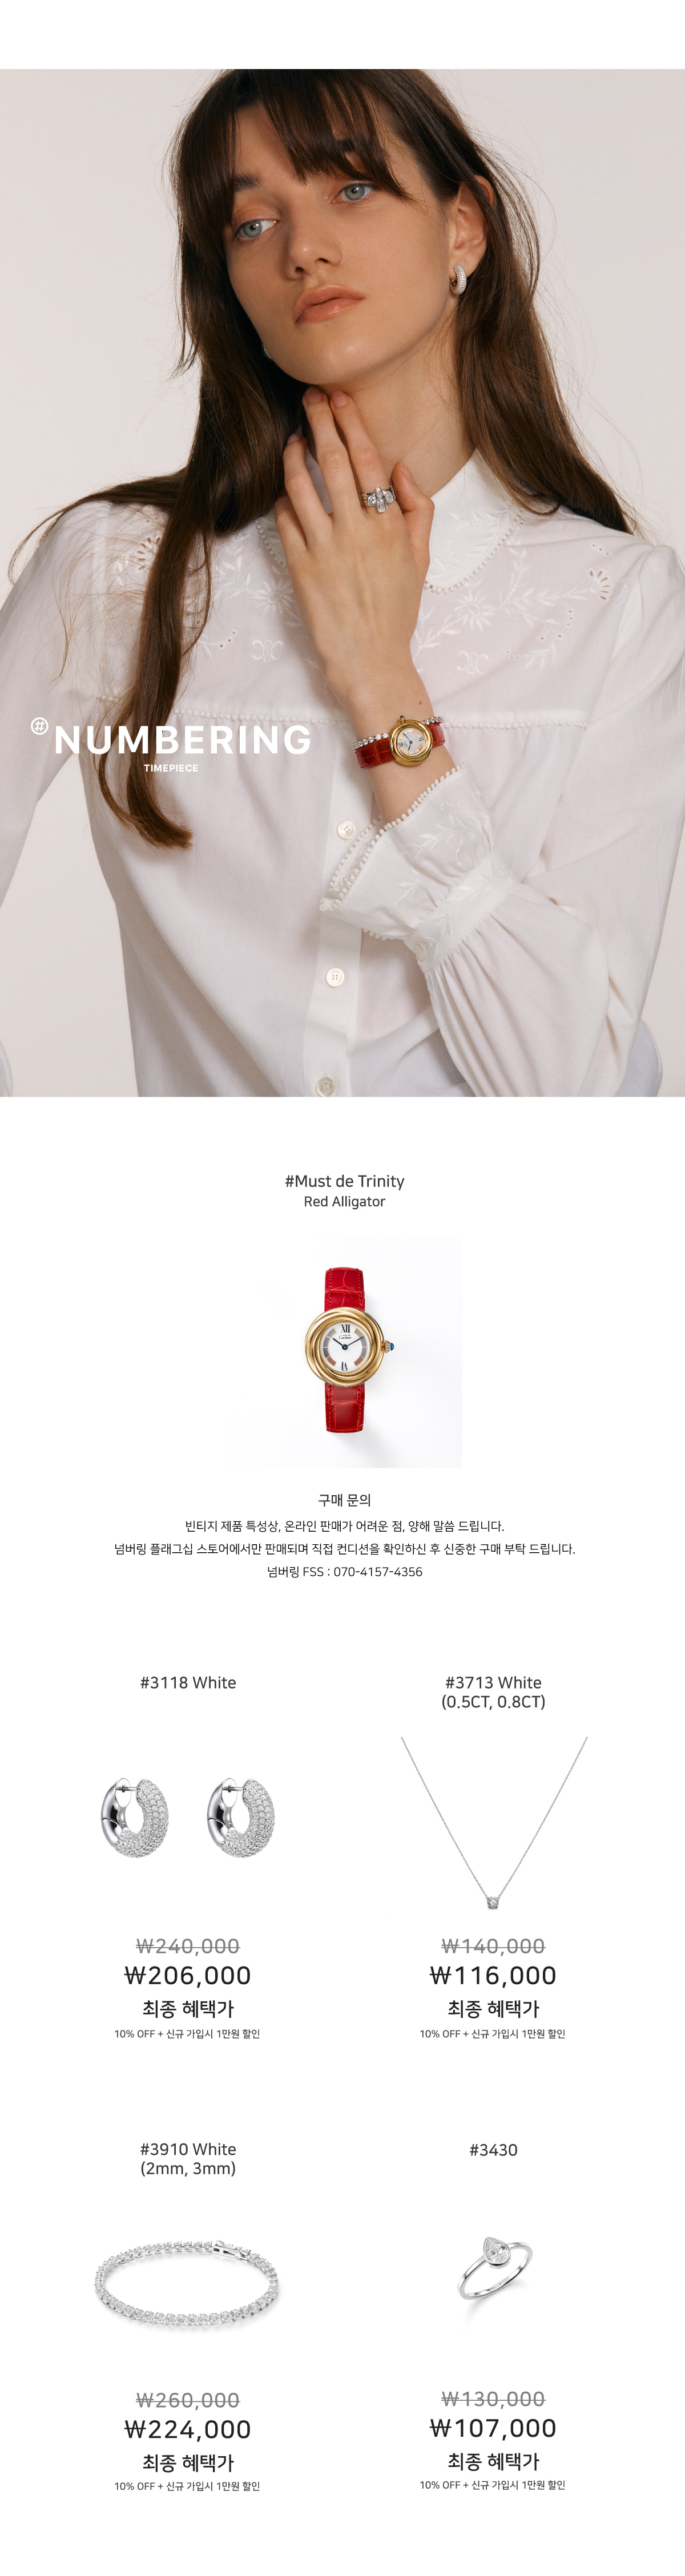 NMBR timepiece launch 3411